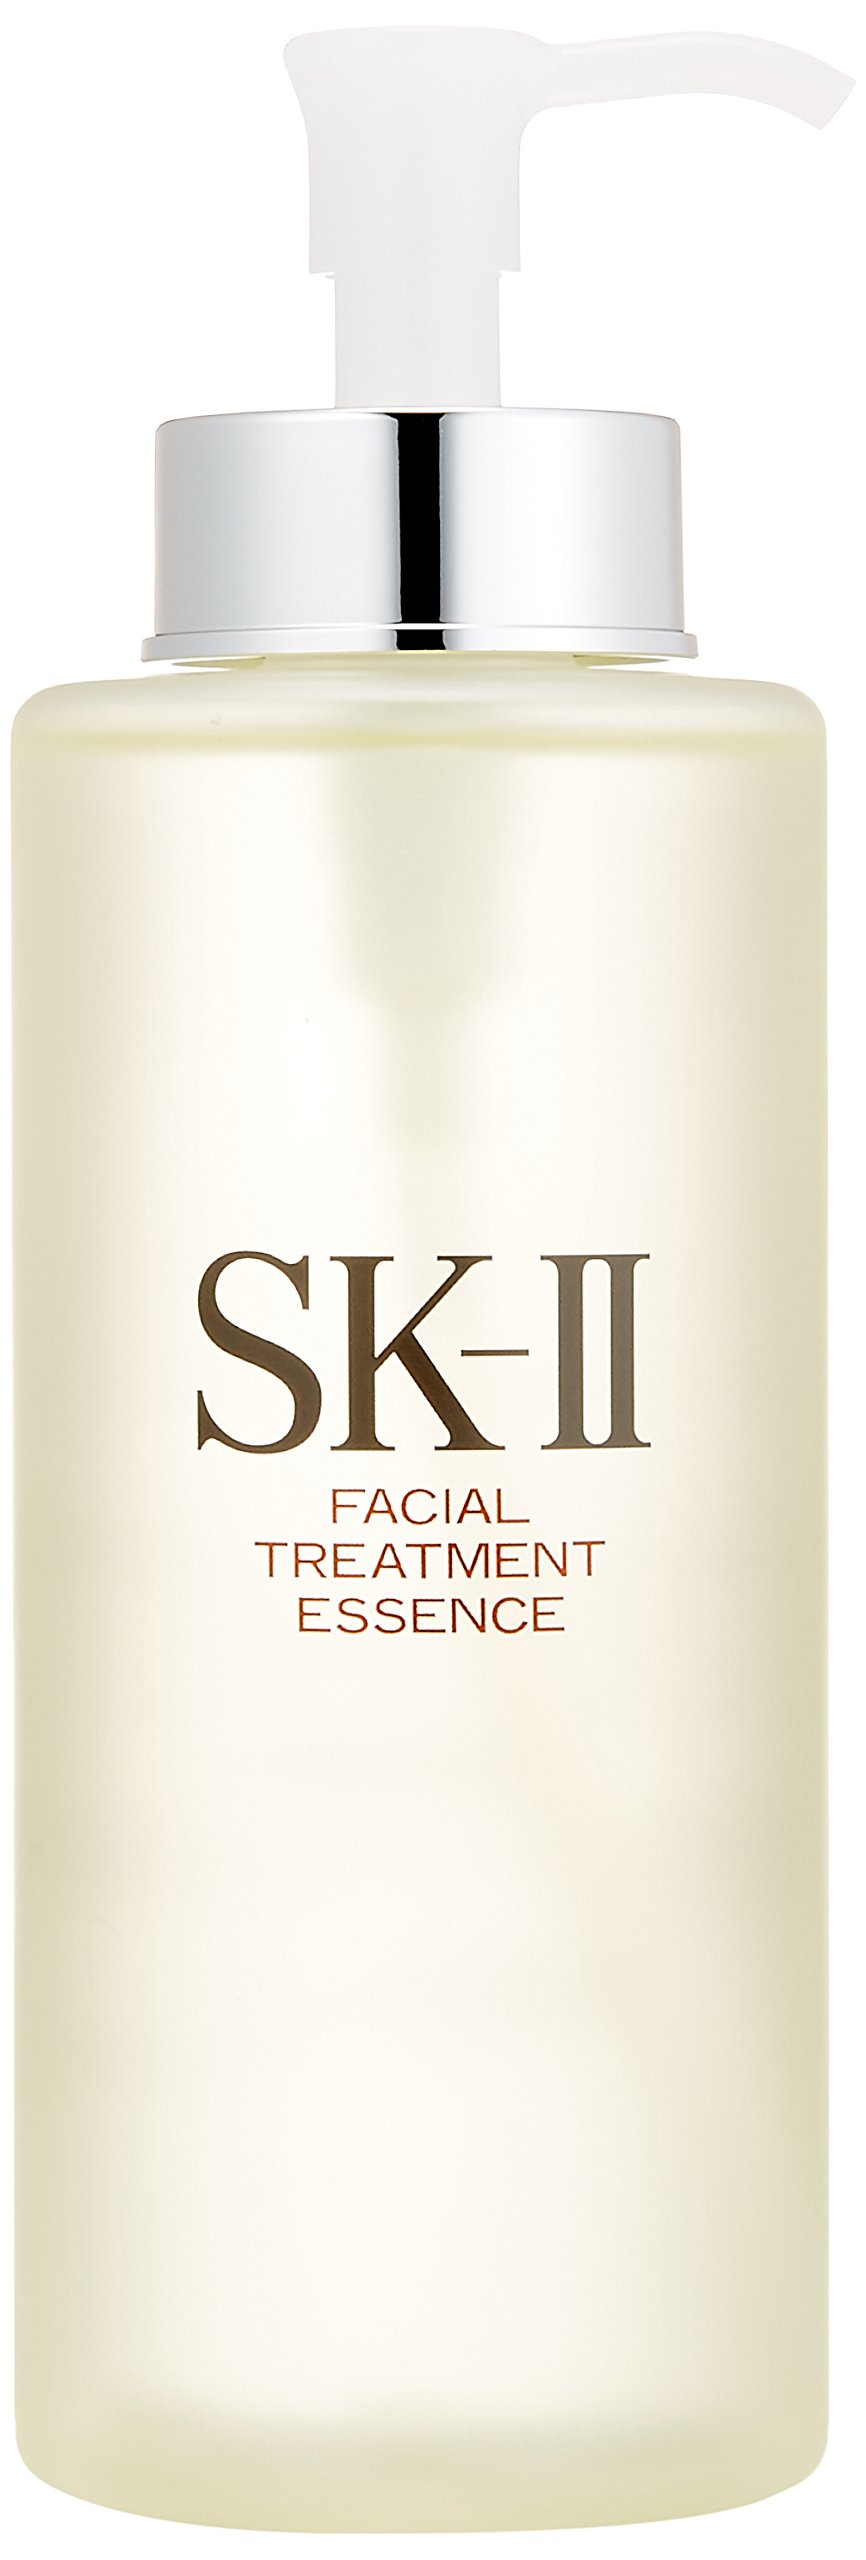 Facial Treatment Essence 330ml/11oz by SK-II (Image #1)